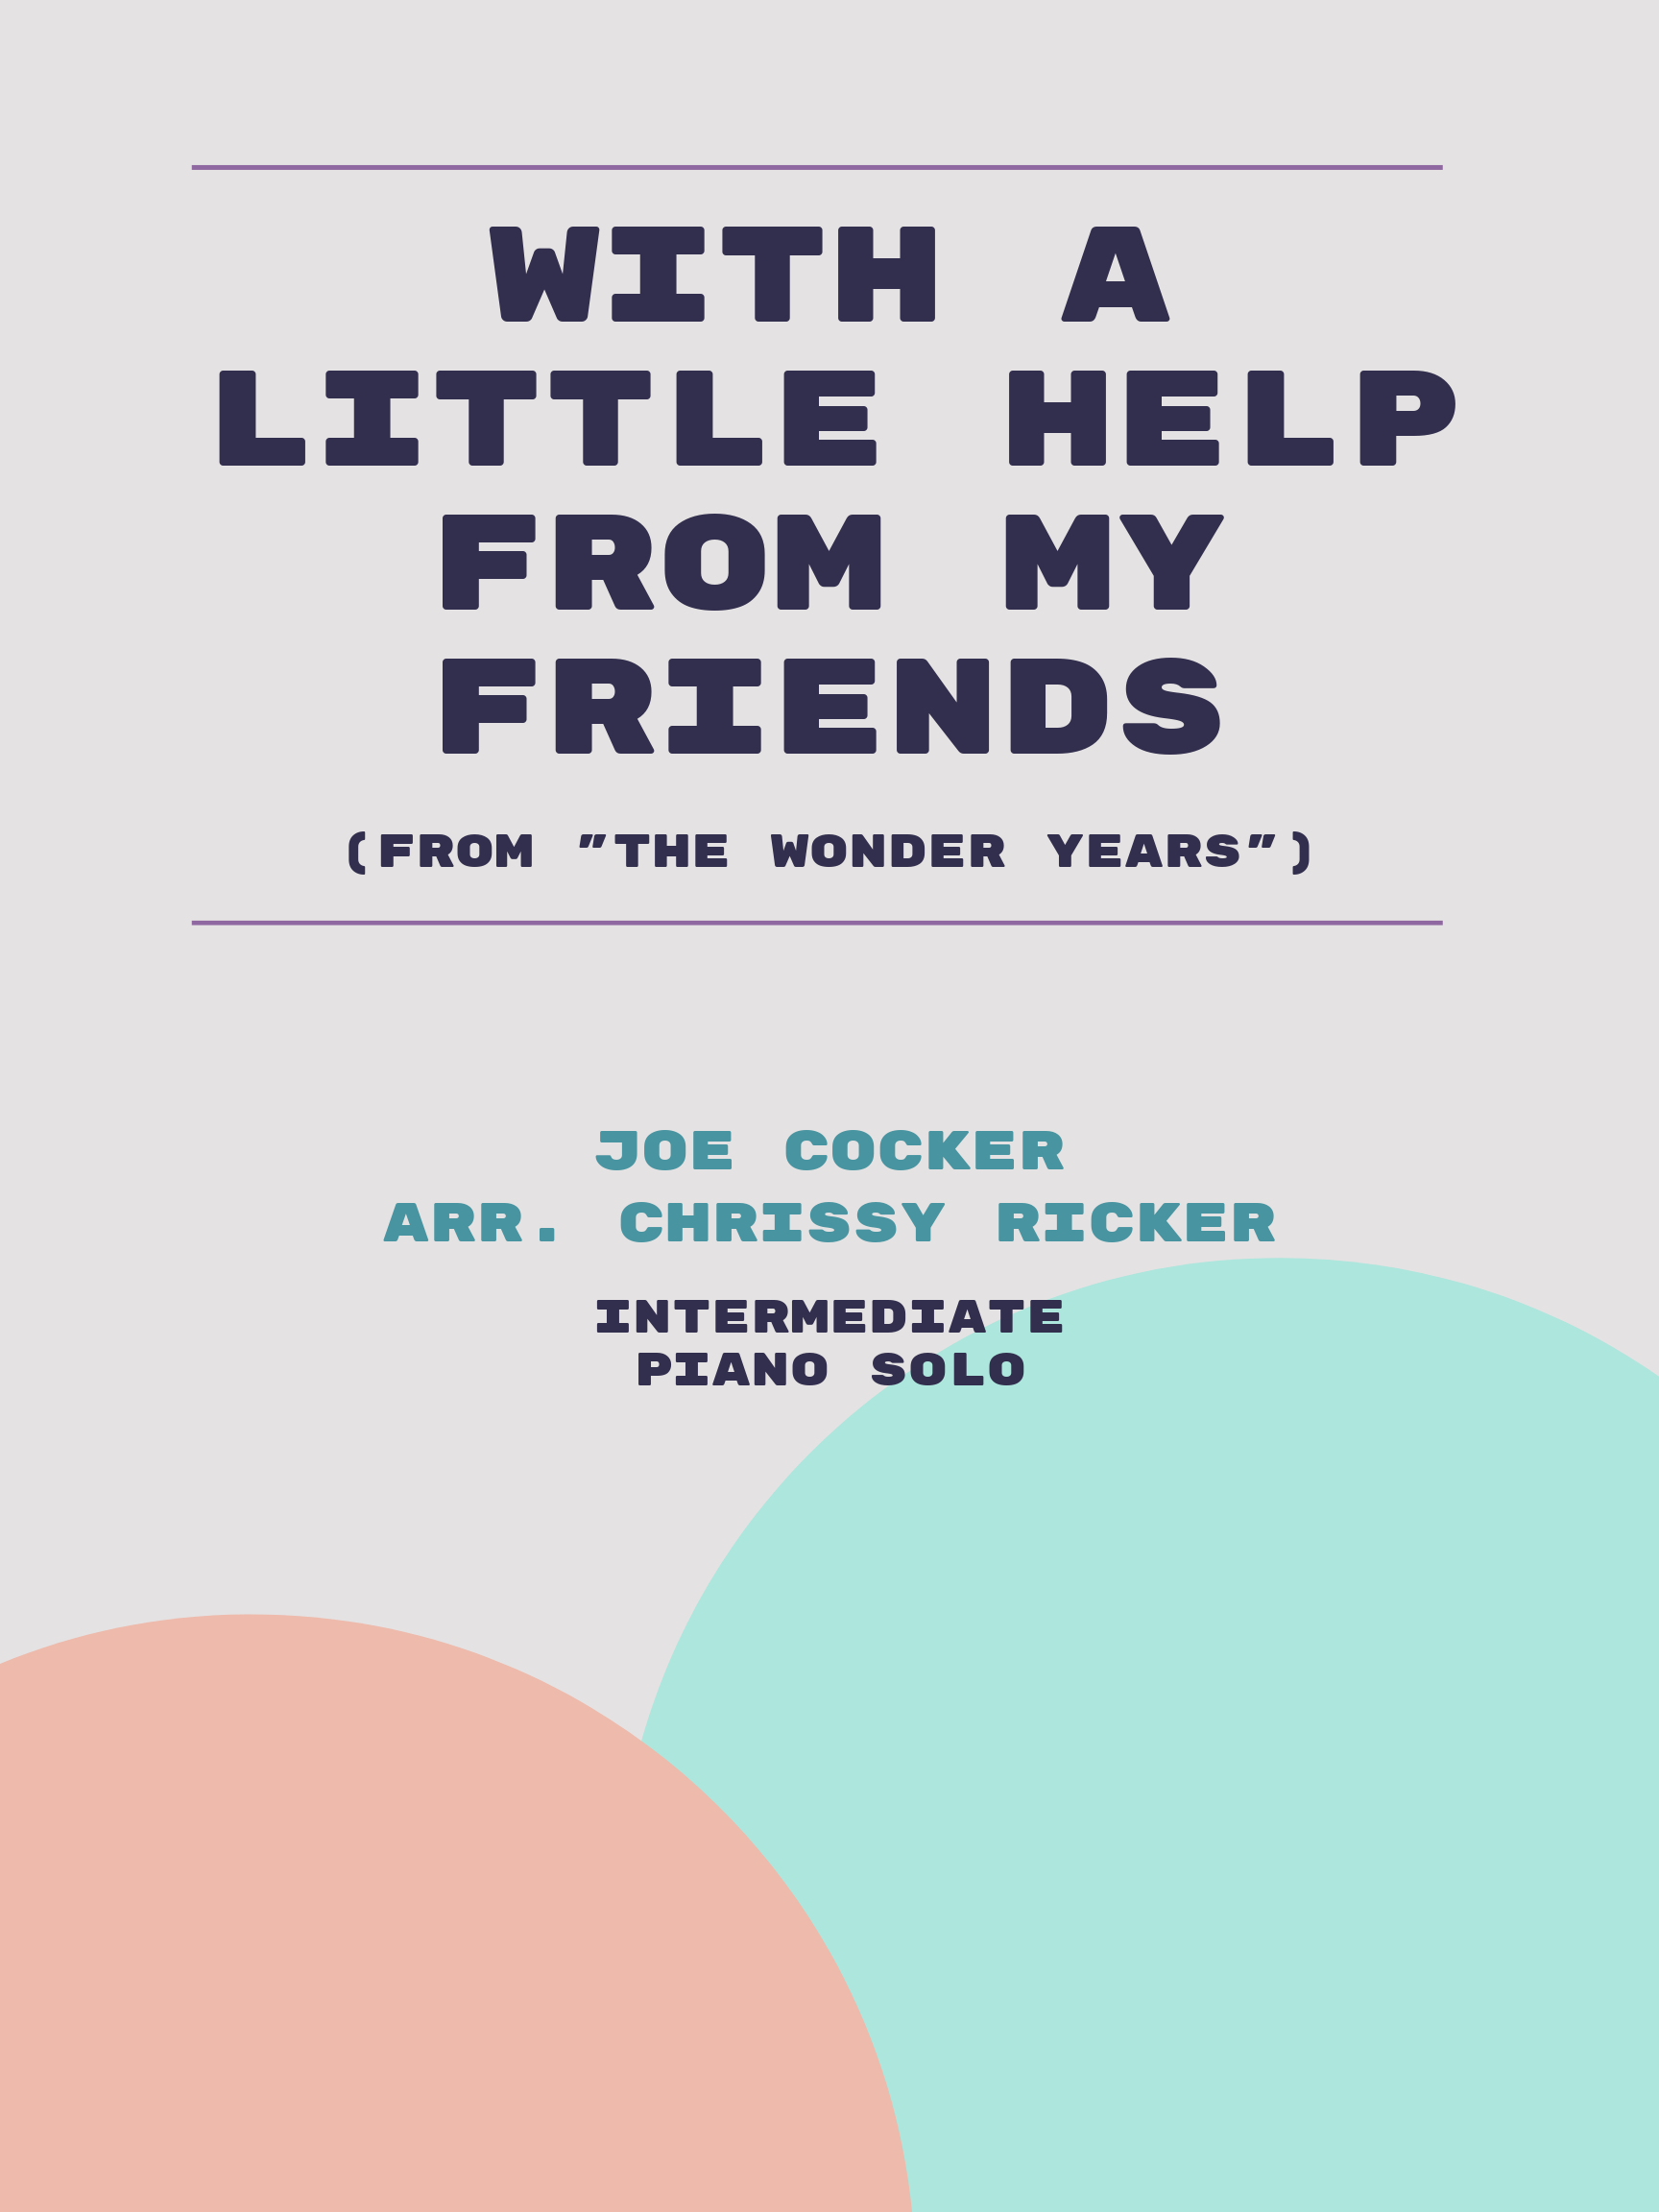 With a Little Help from My Friends by Joe Cocker